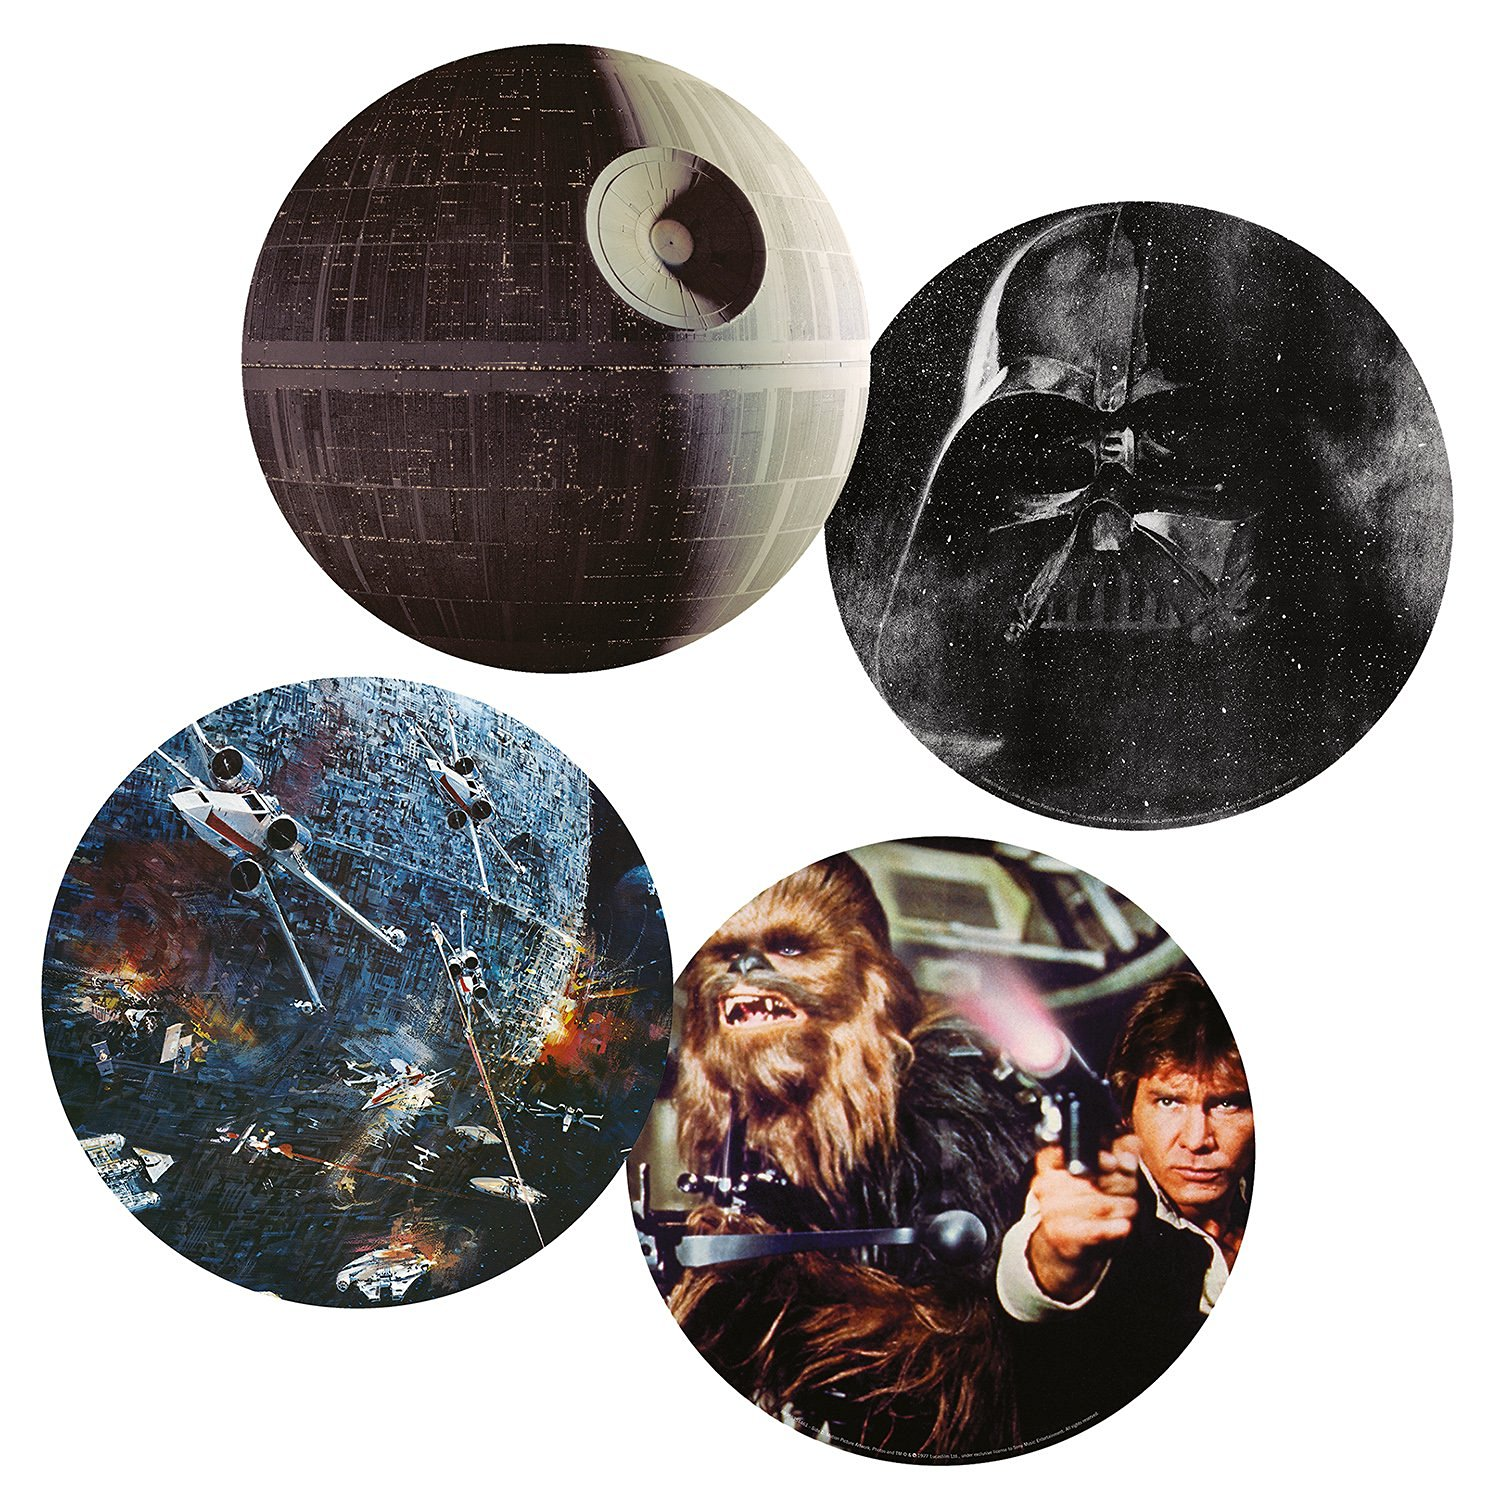 81gtqkwq9bl  sl1500  John Williams original Star Wars score gets gorgeous picture disc reissue